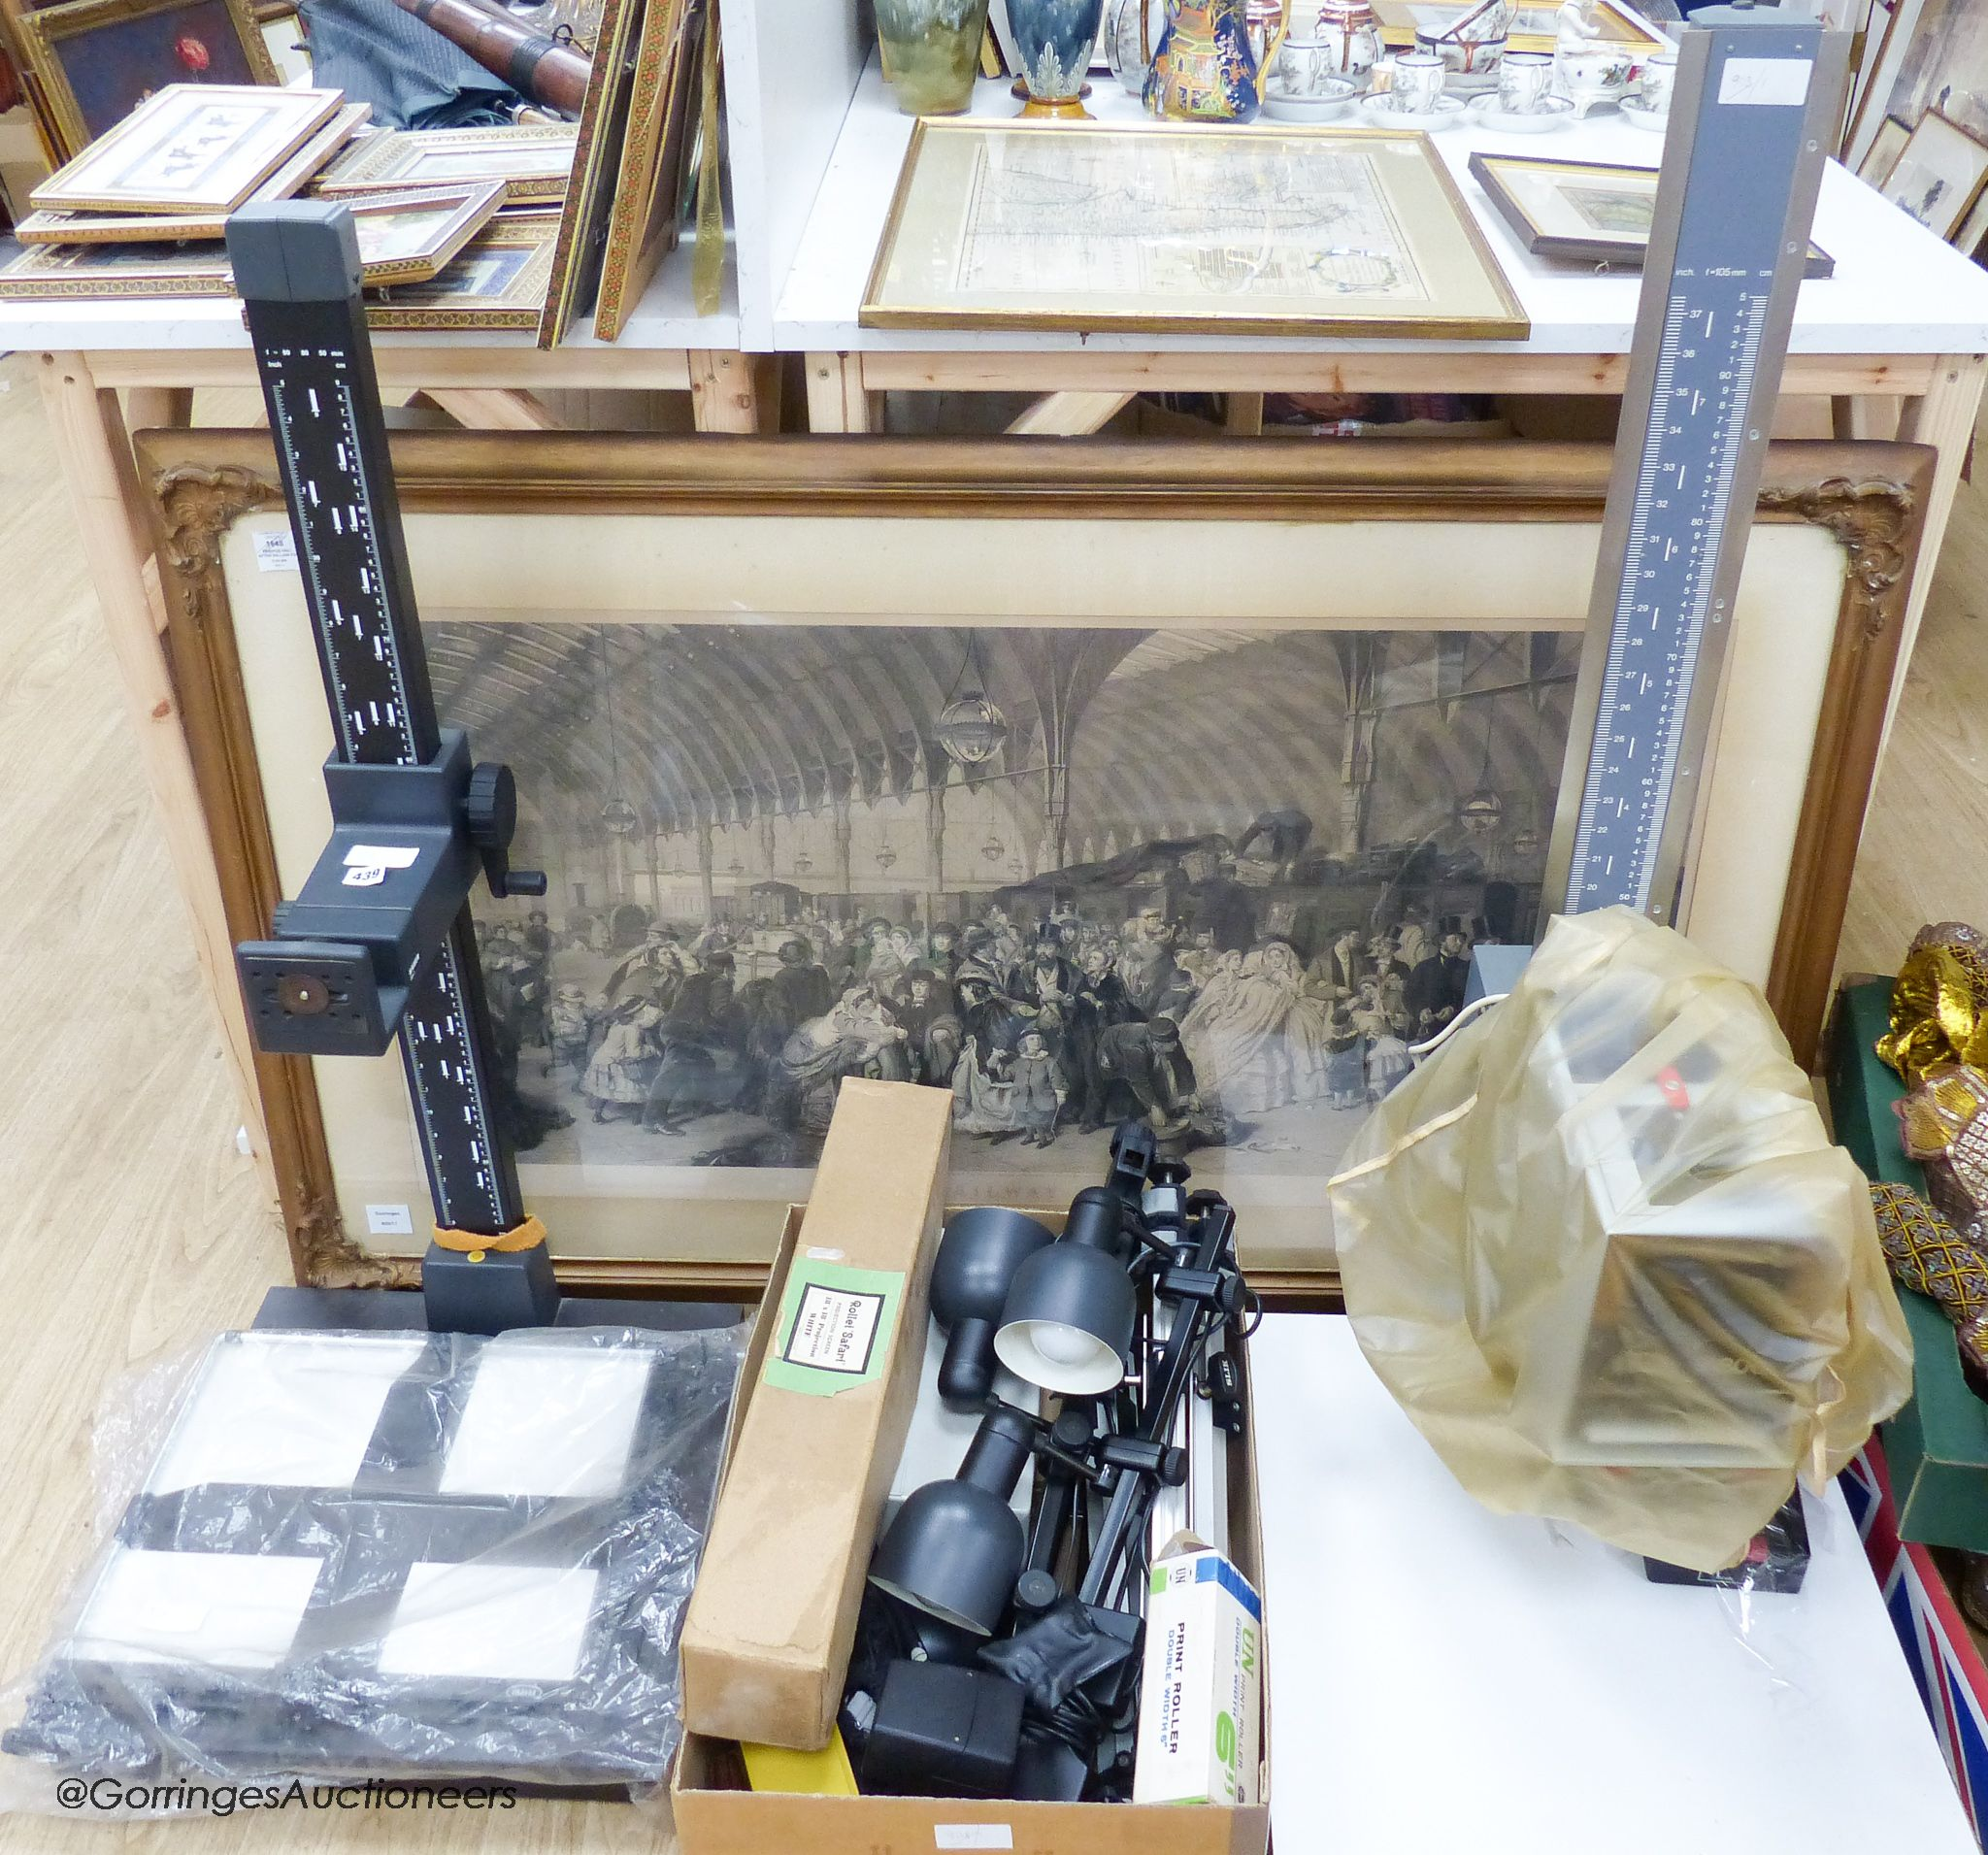 A collection of 20th century photographic accessories to include a Durst M800 enlarger and base, a